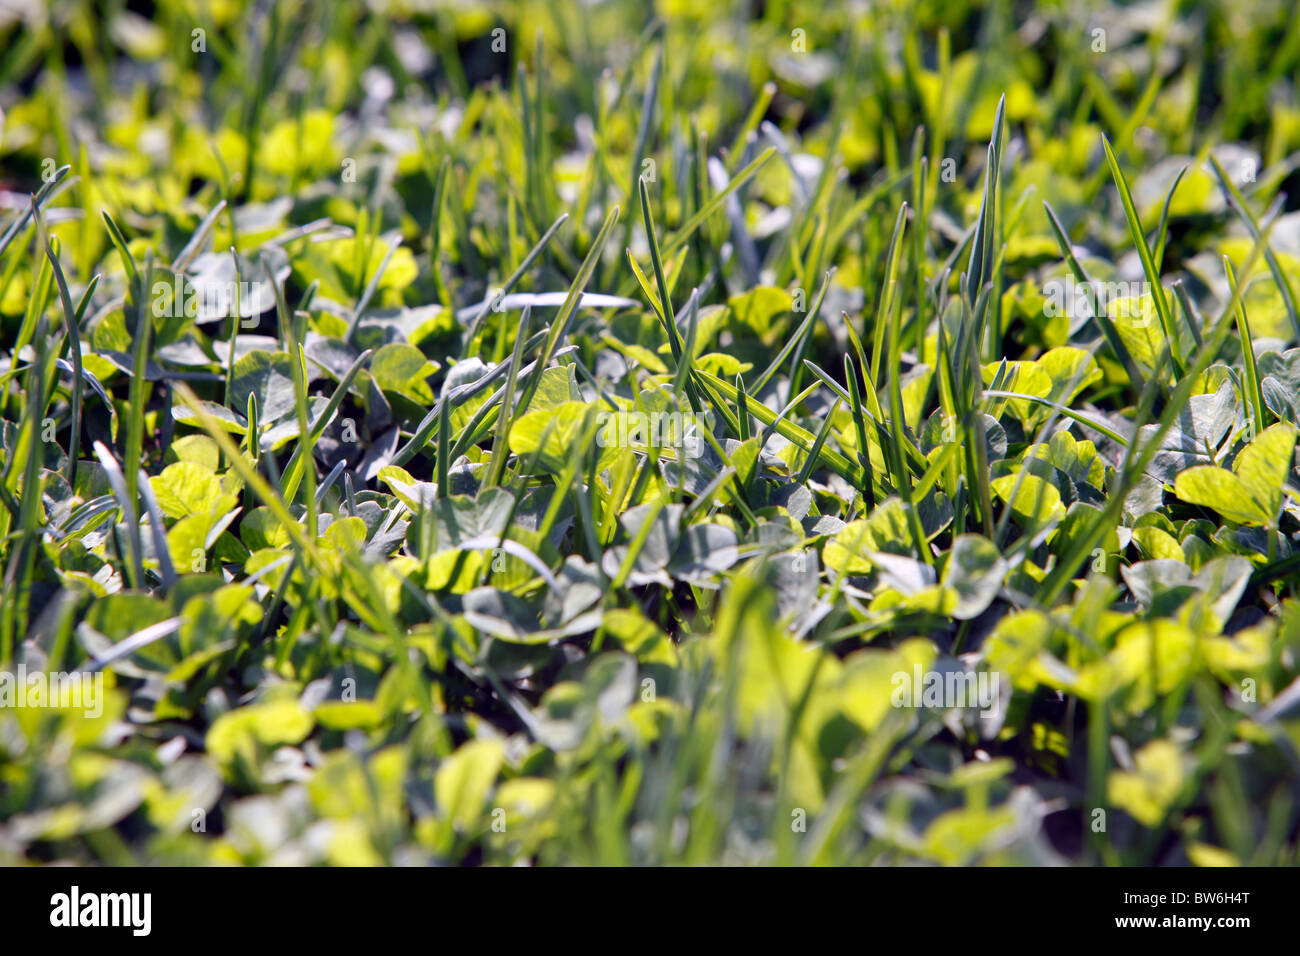 Blades of grass and clover - Stock Image